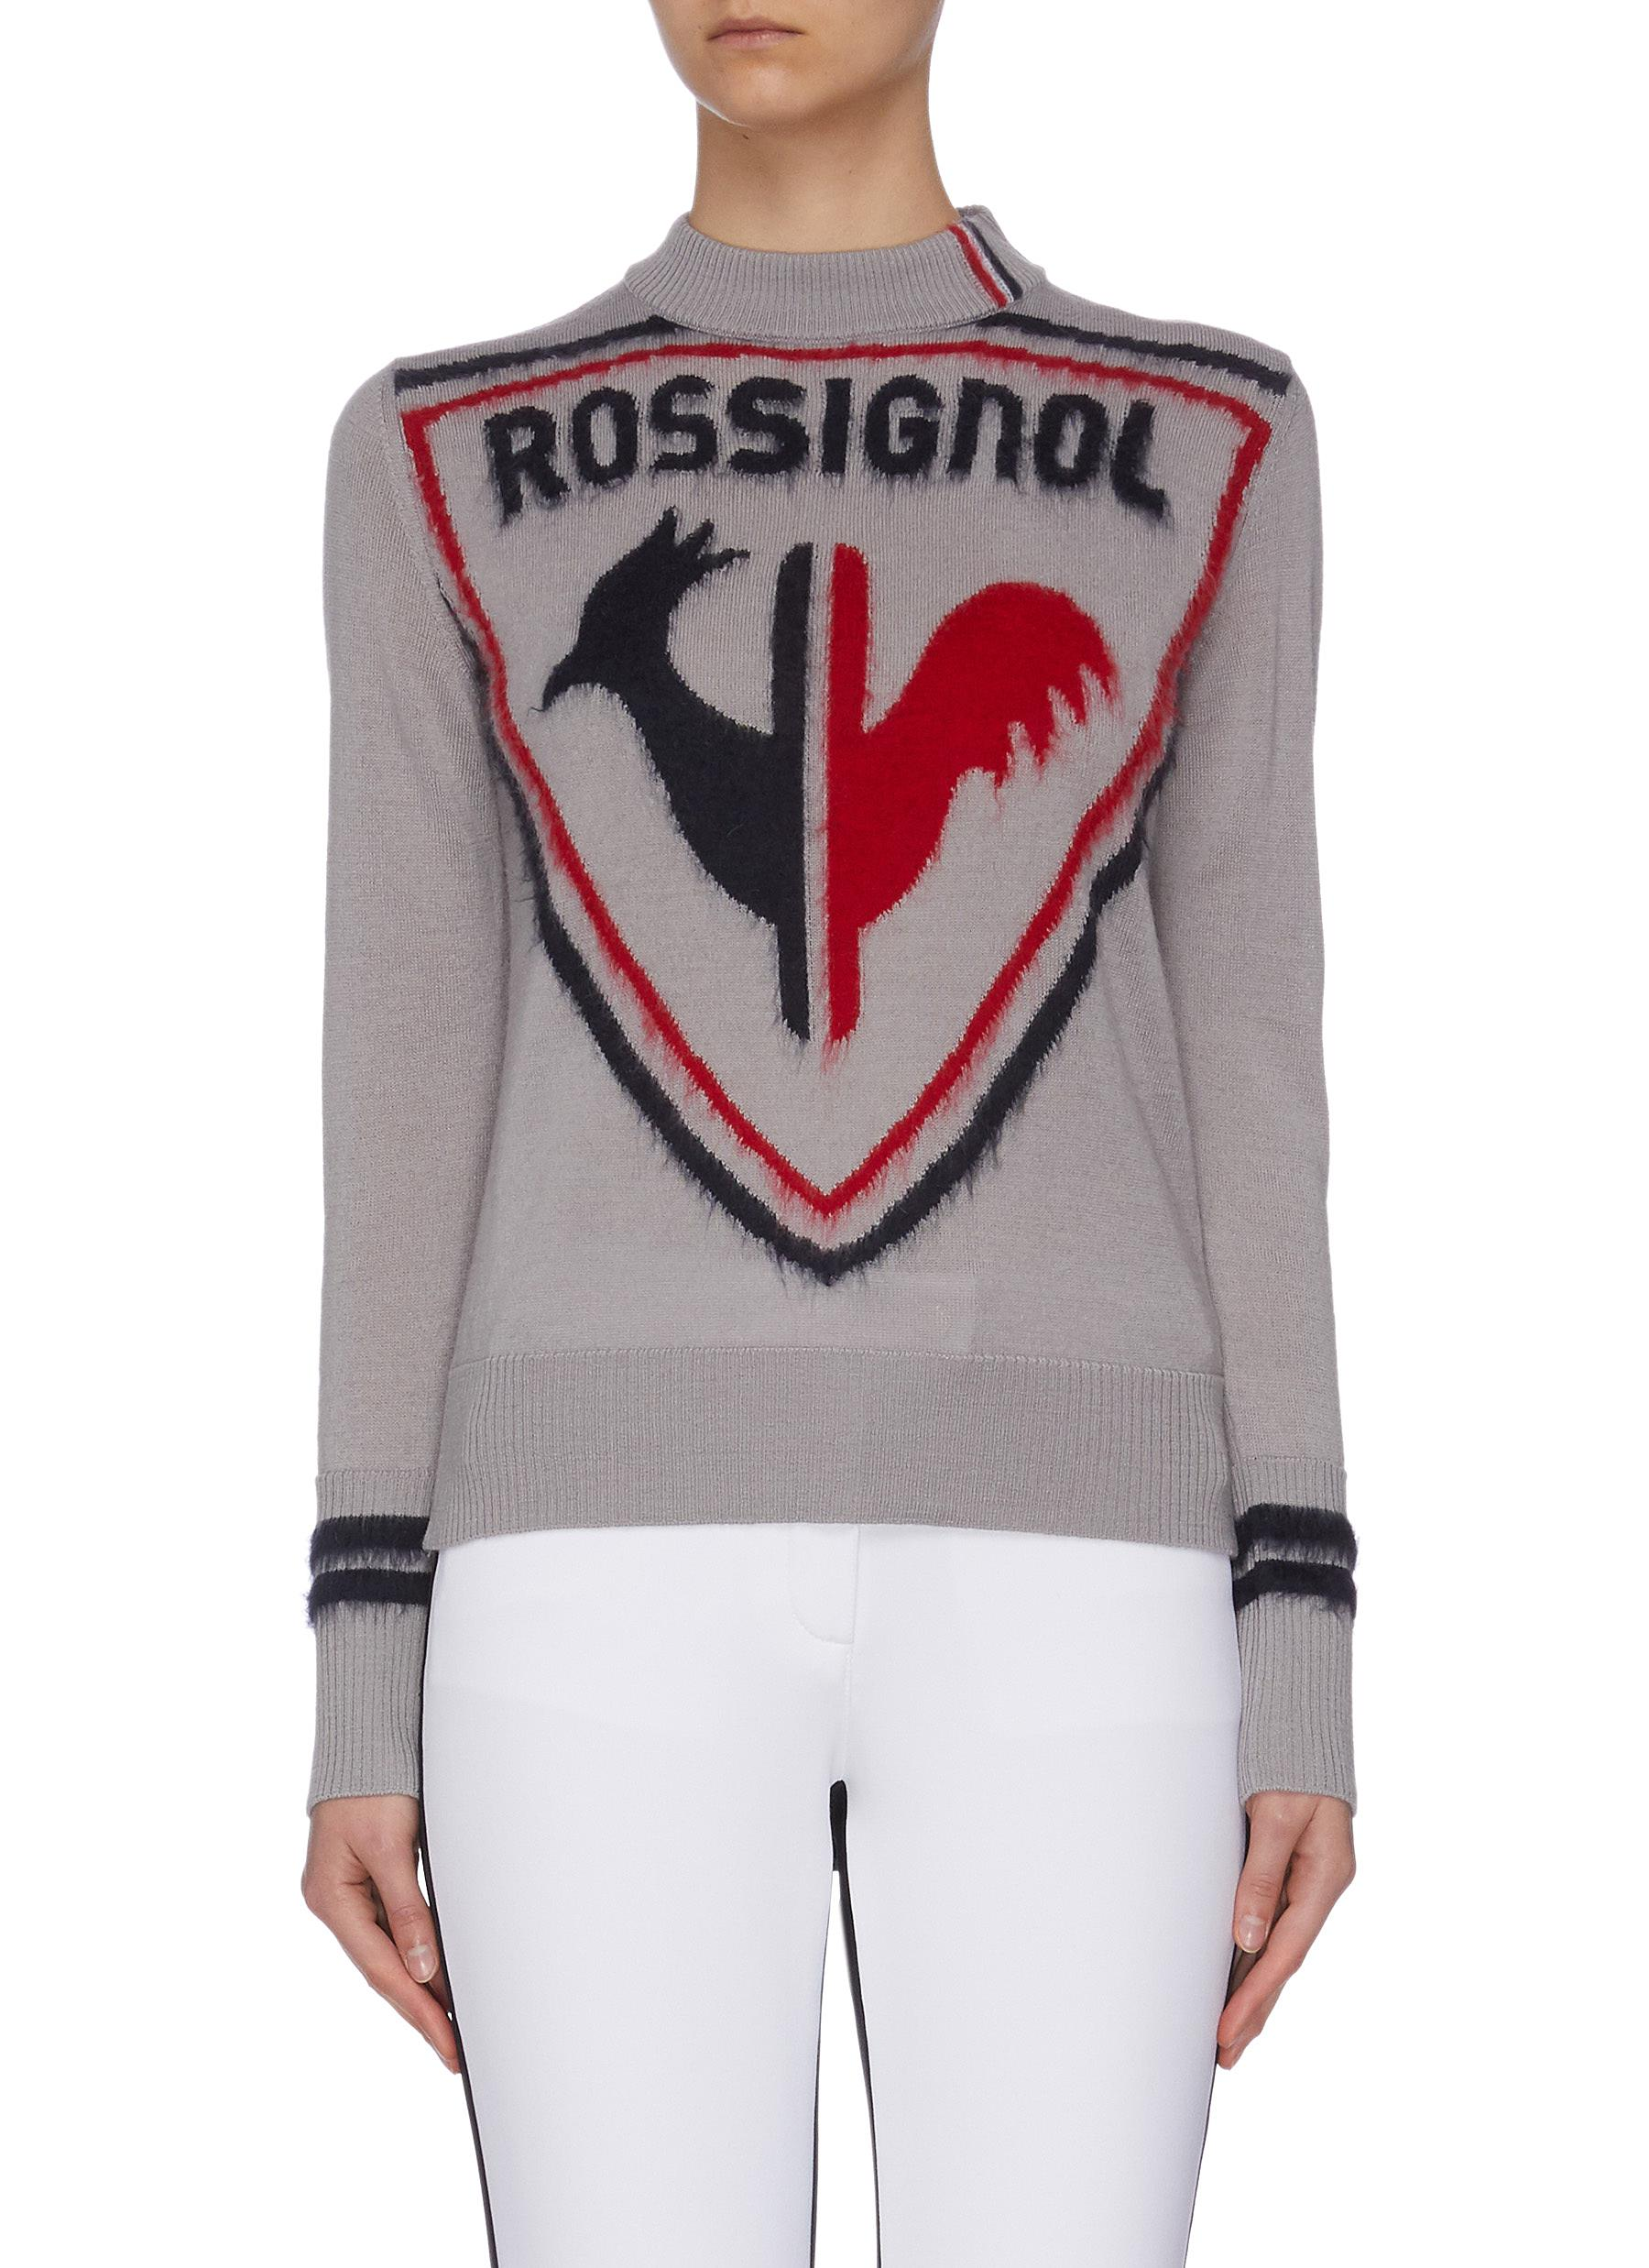 Buy Rossignol Knitwear Rooster print crewneck knit sweater